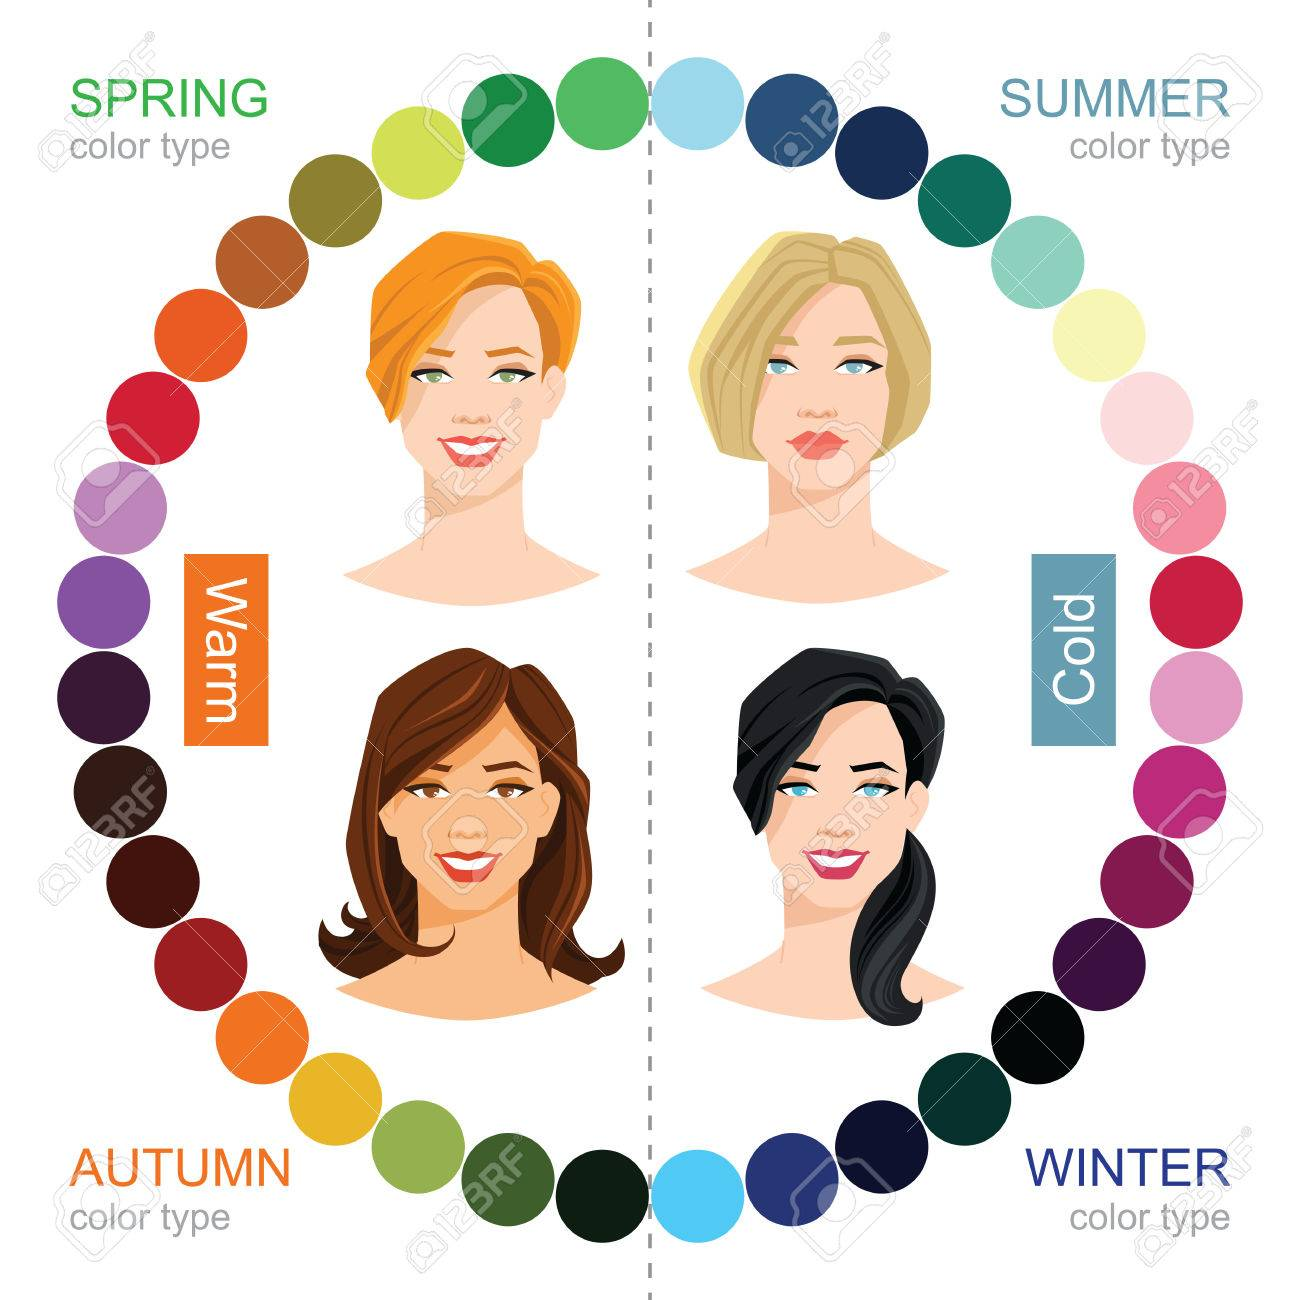 vector illustration of seasonal color palette for spring summer